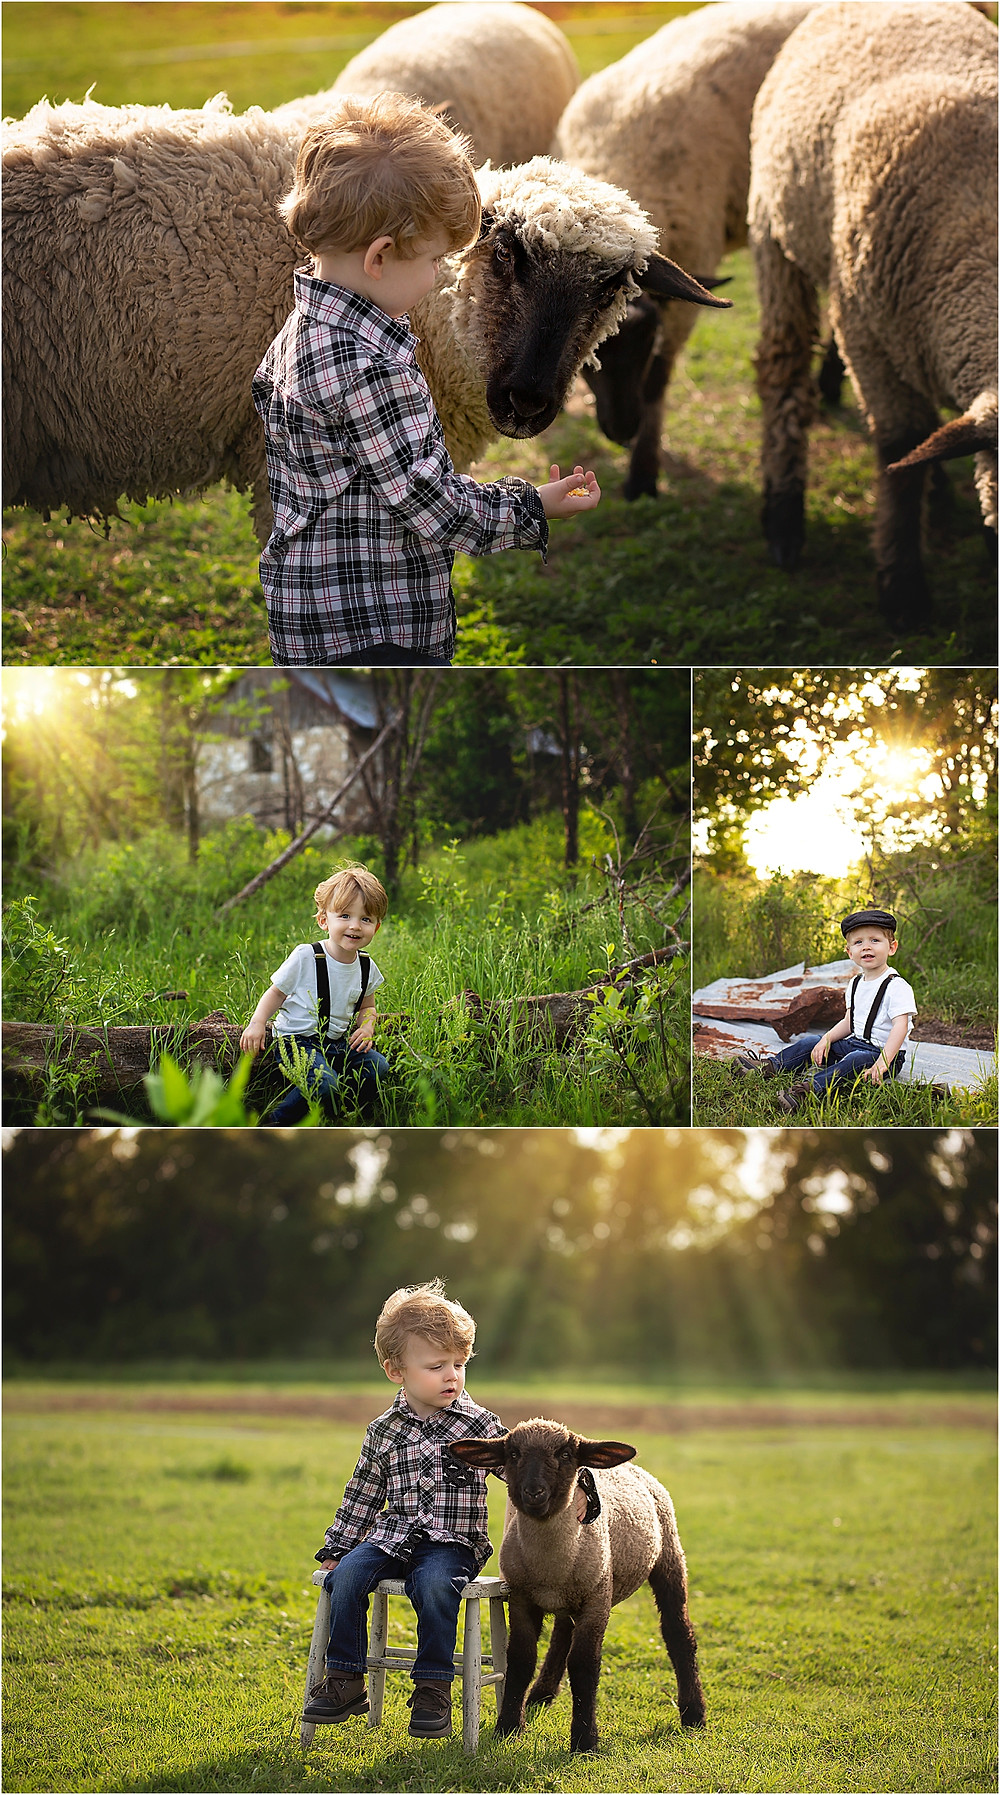 Dallas Child Photographer